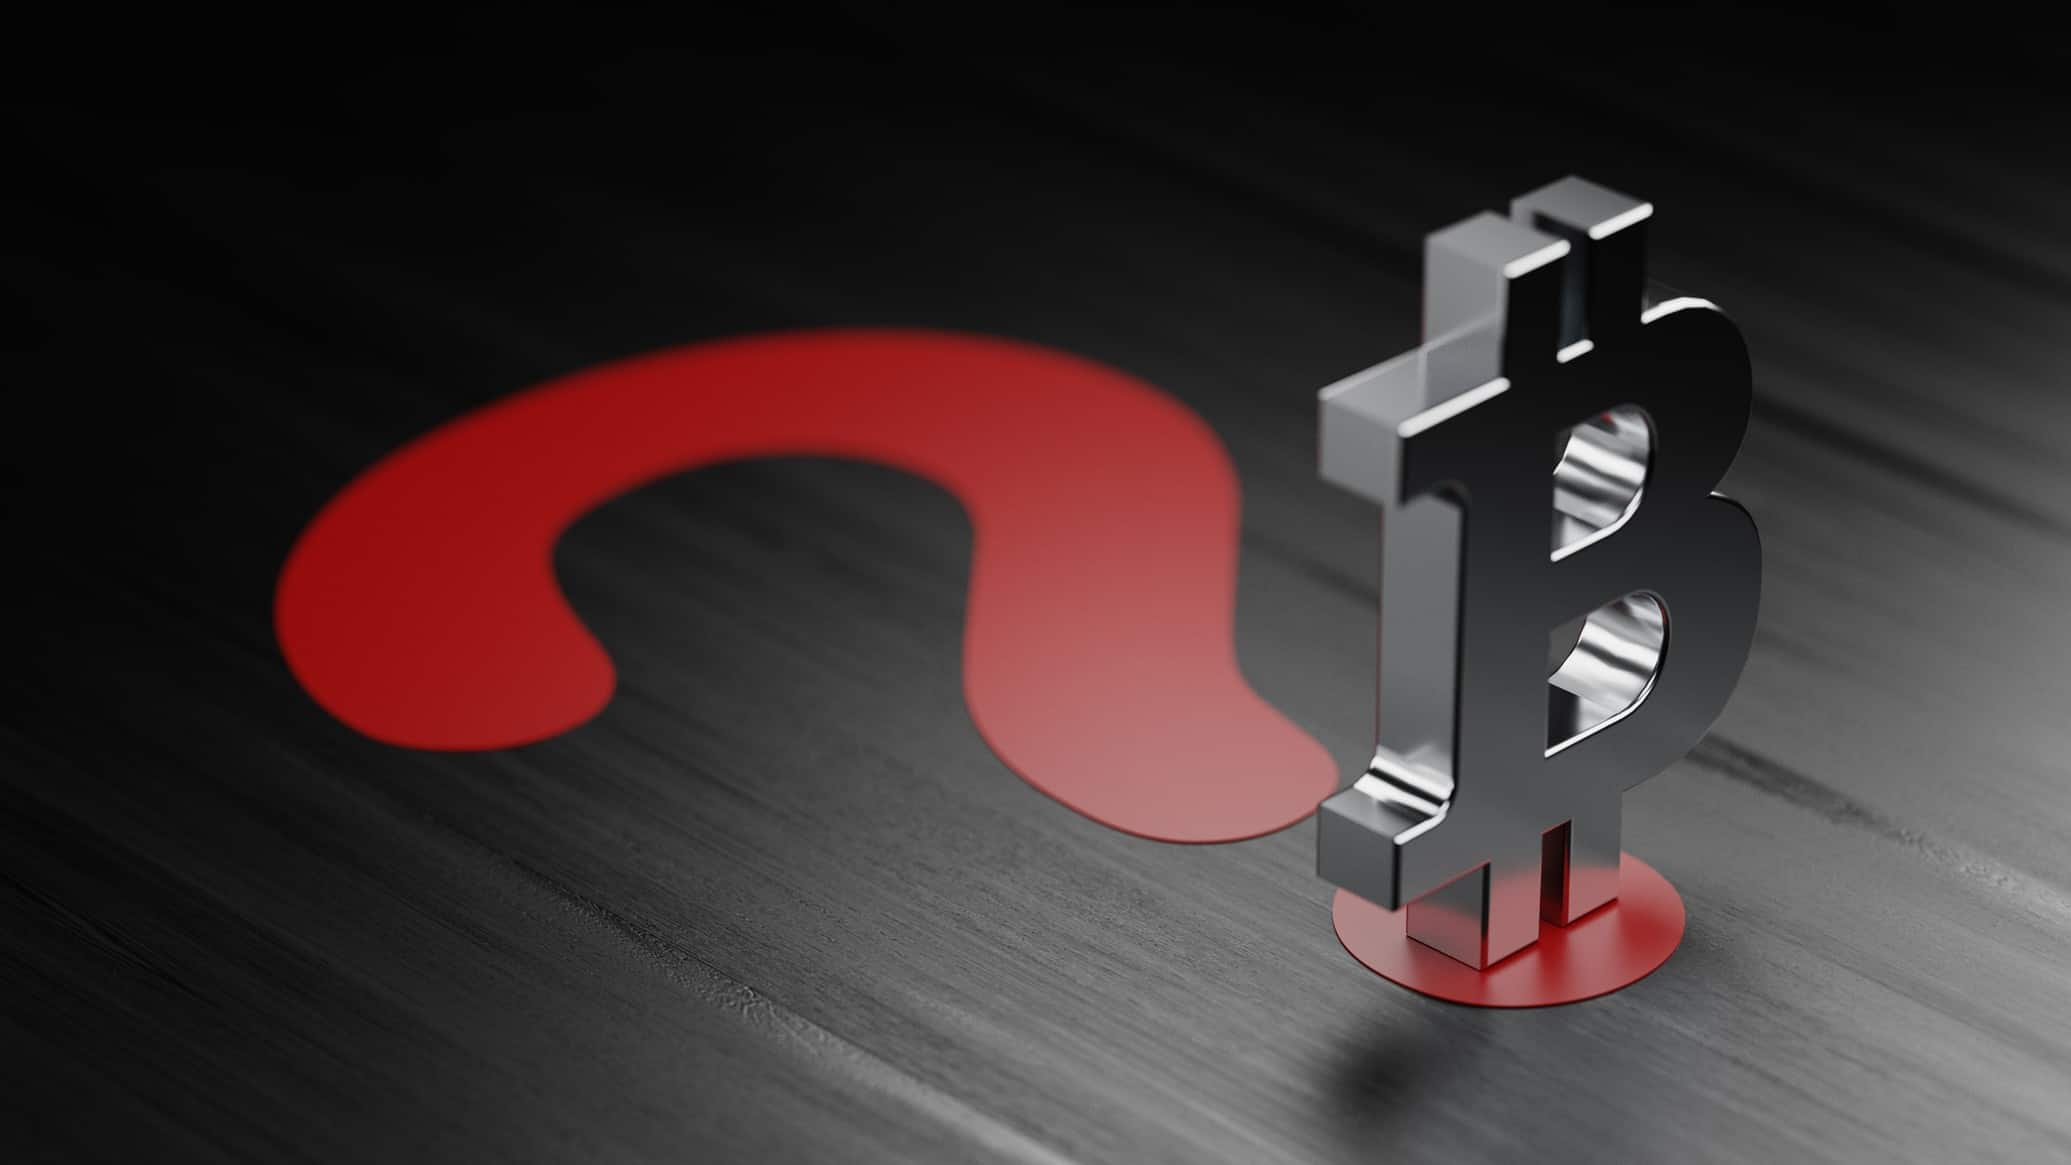 A Bitcoin symbol sits atop a red question mark, indicating uncertainty over the value of crypto currency